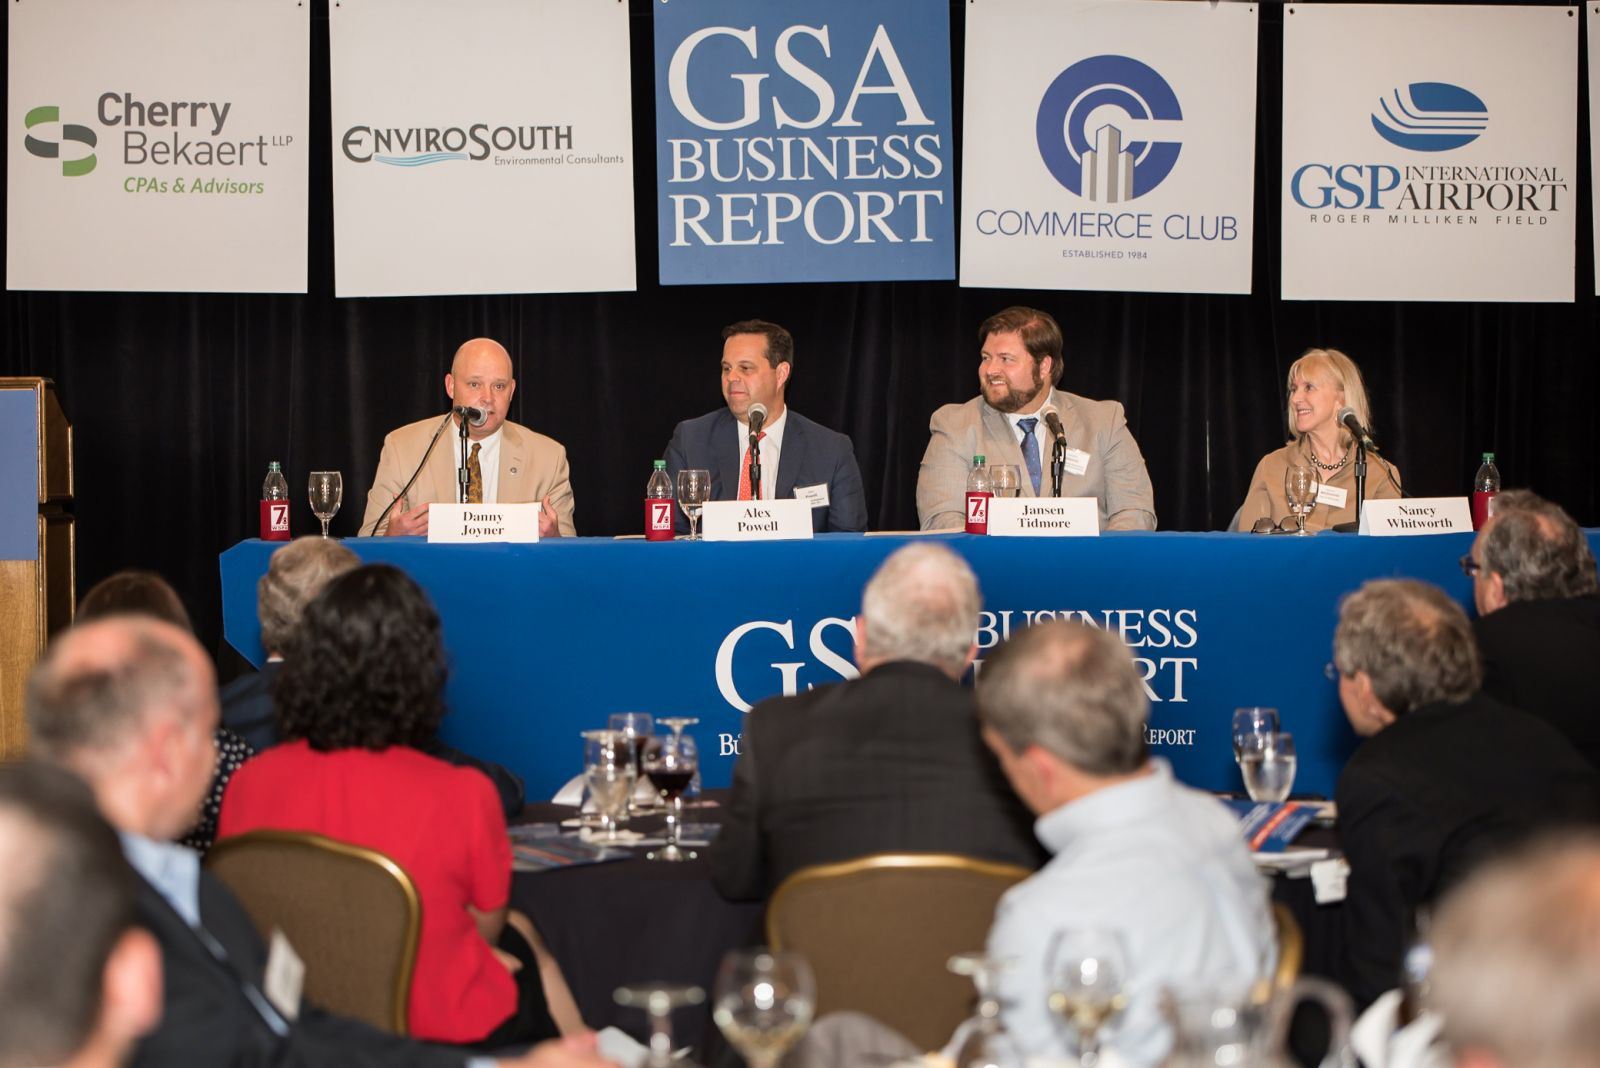 Panelists at the GSA Business Report Power Event were, from left, Danny Joyner, president, Berkshire Hathaway Home Services, C. Dan Joyner; Alex Powell, Spartanburg development and leasing manager, Johnson Development Associates; Jansen Tidmore, executive vice president, Spartanburg Downtown Development Partnership, and Nancy Whitworth, deputy city manager and director of economic development, city of Greenville. (Photo/Kathy Allen)